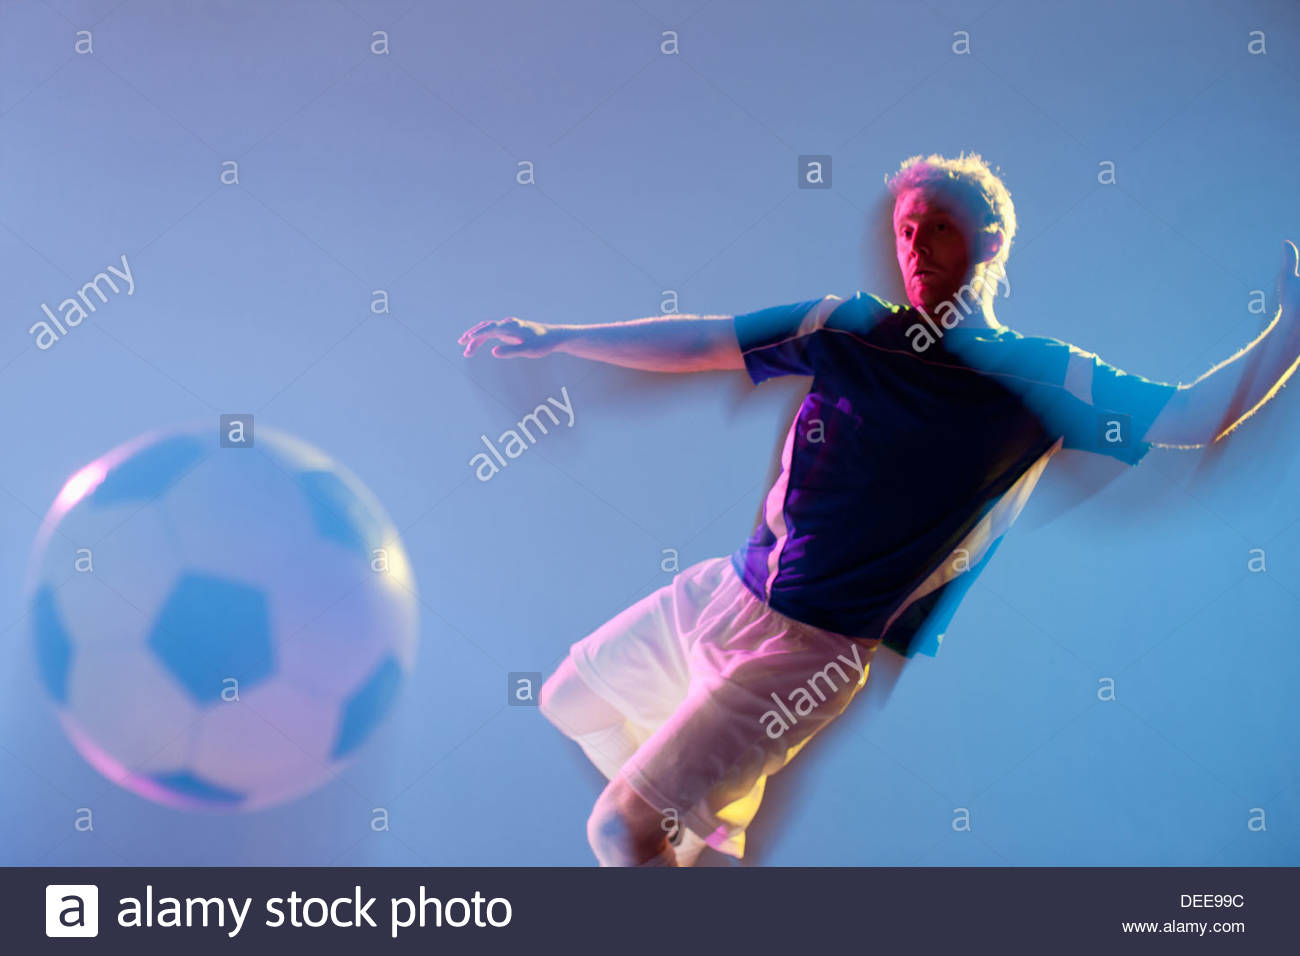 Blurred view of soccer player kicking ball - Stock Image